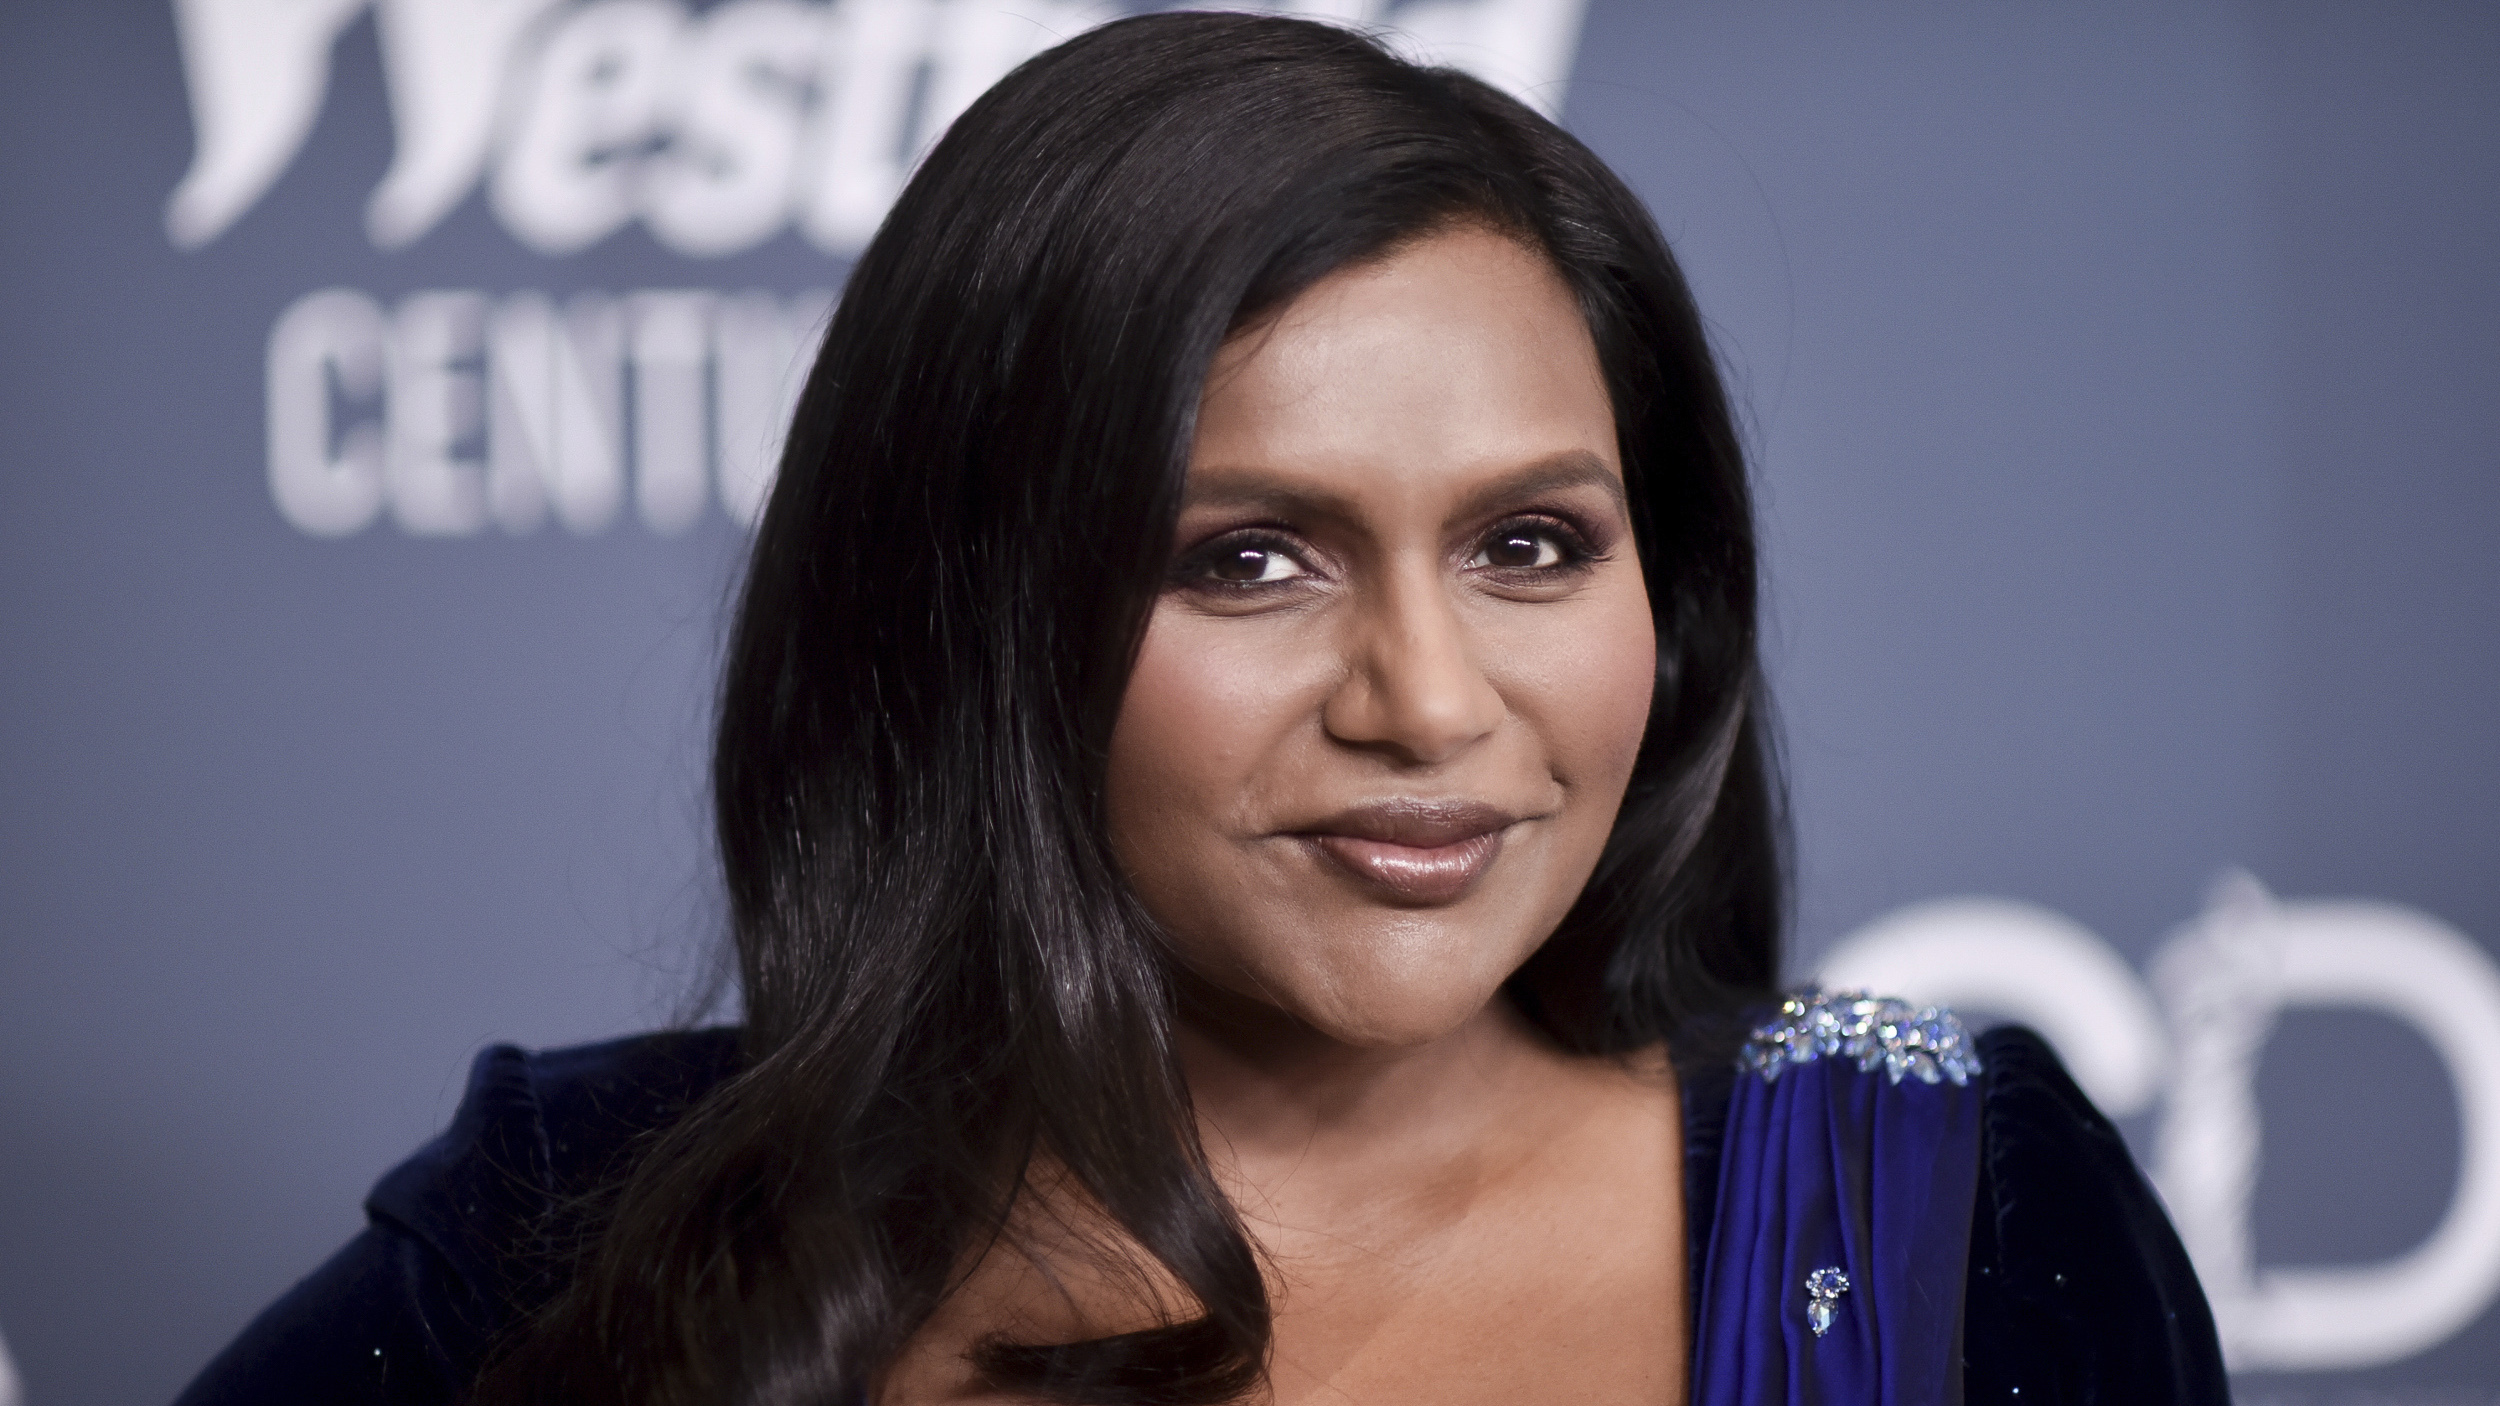 Mindy Kaling Brings A New Nerd To Tv And Finds She Was Not Alone As A Teen Wfae